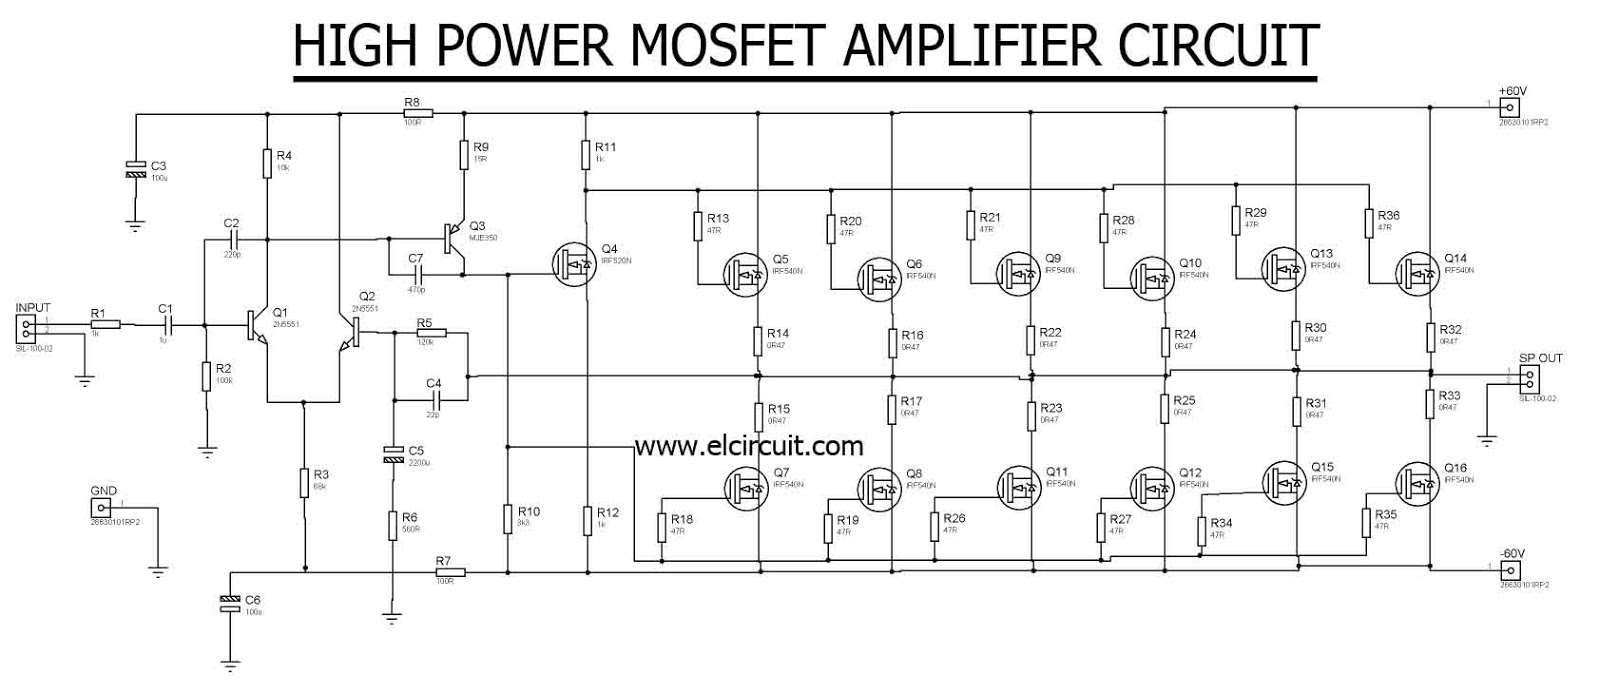 1000w Power Amplifier Circuit Diagram Free Wiring And Inverter Electronic Circuits High Mosfet Irf540n Chinese Pa Schematic